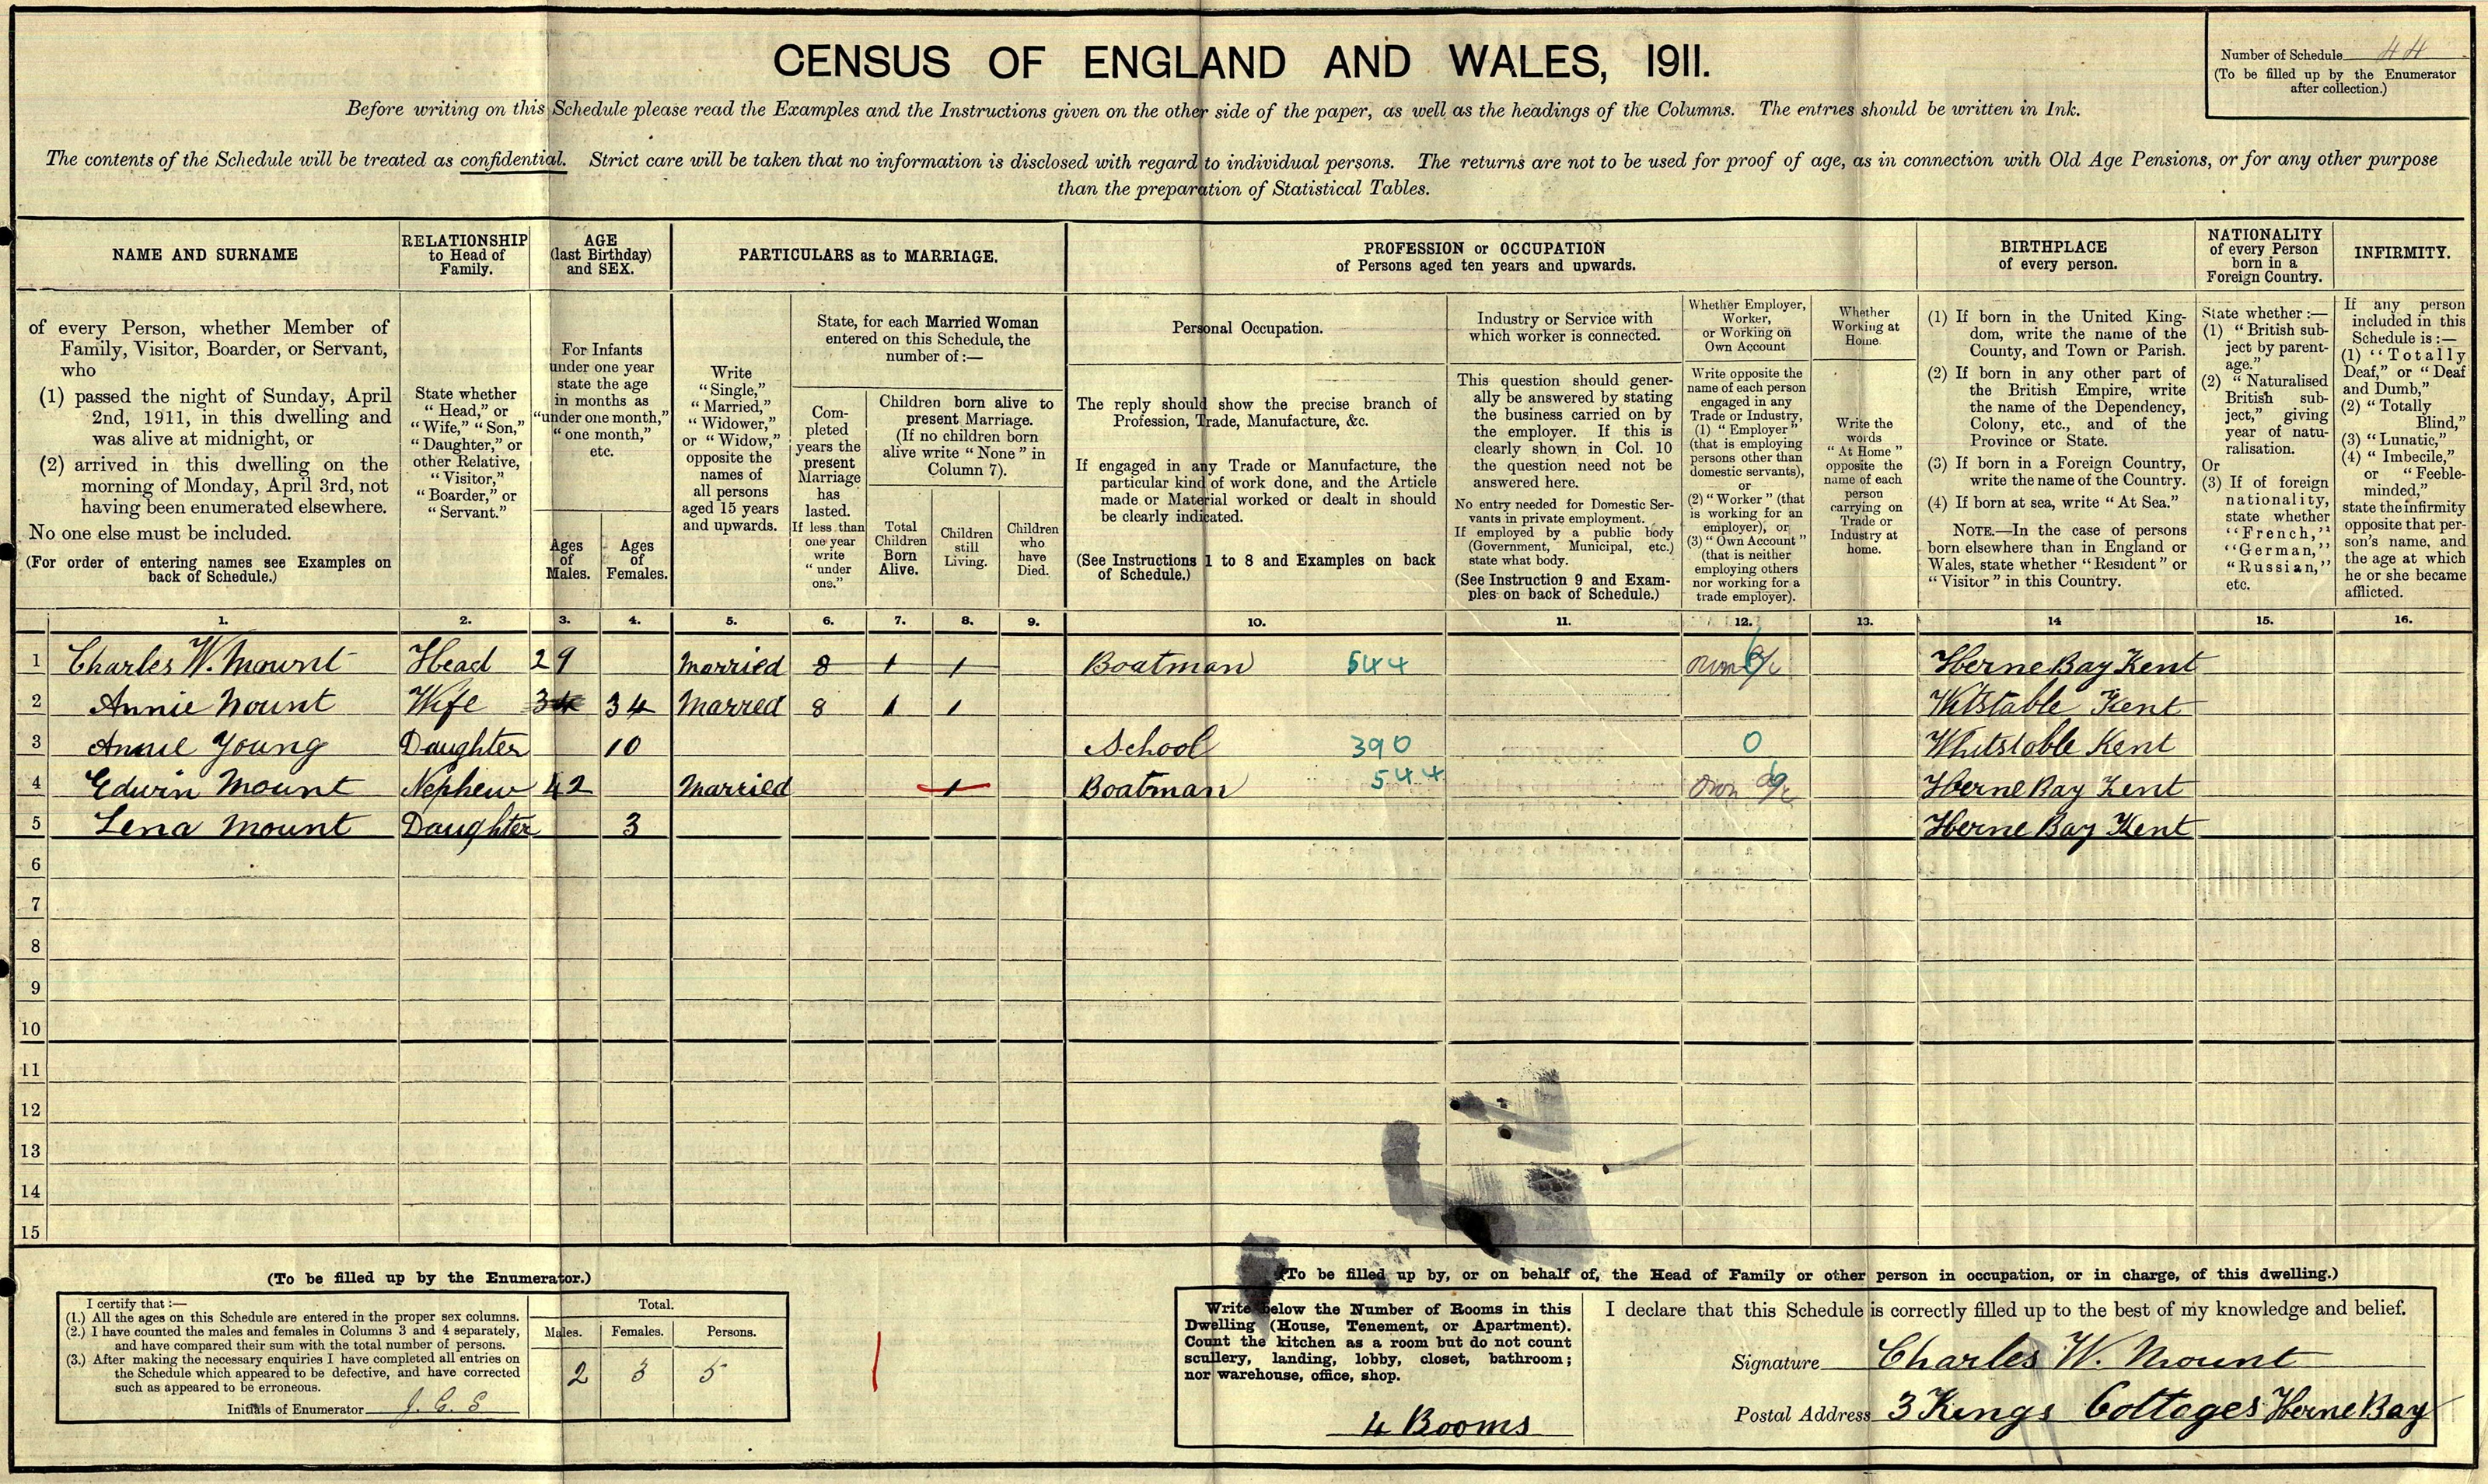 1911 UK Census